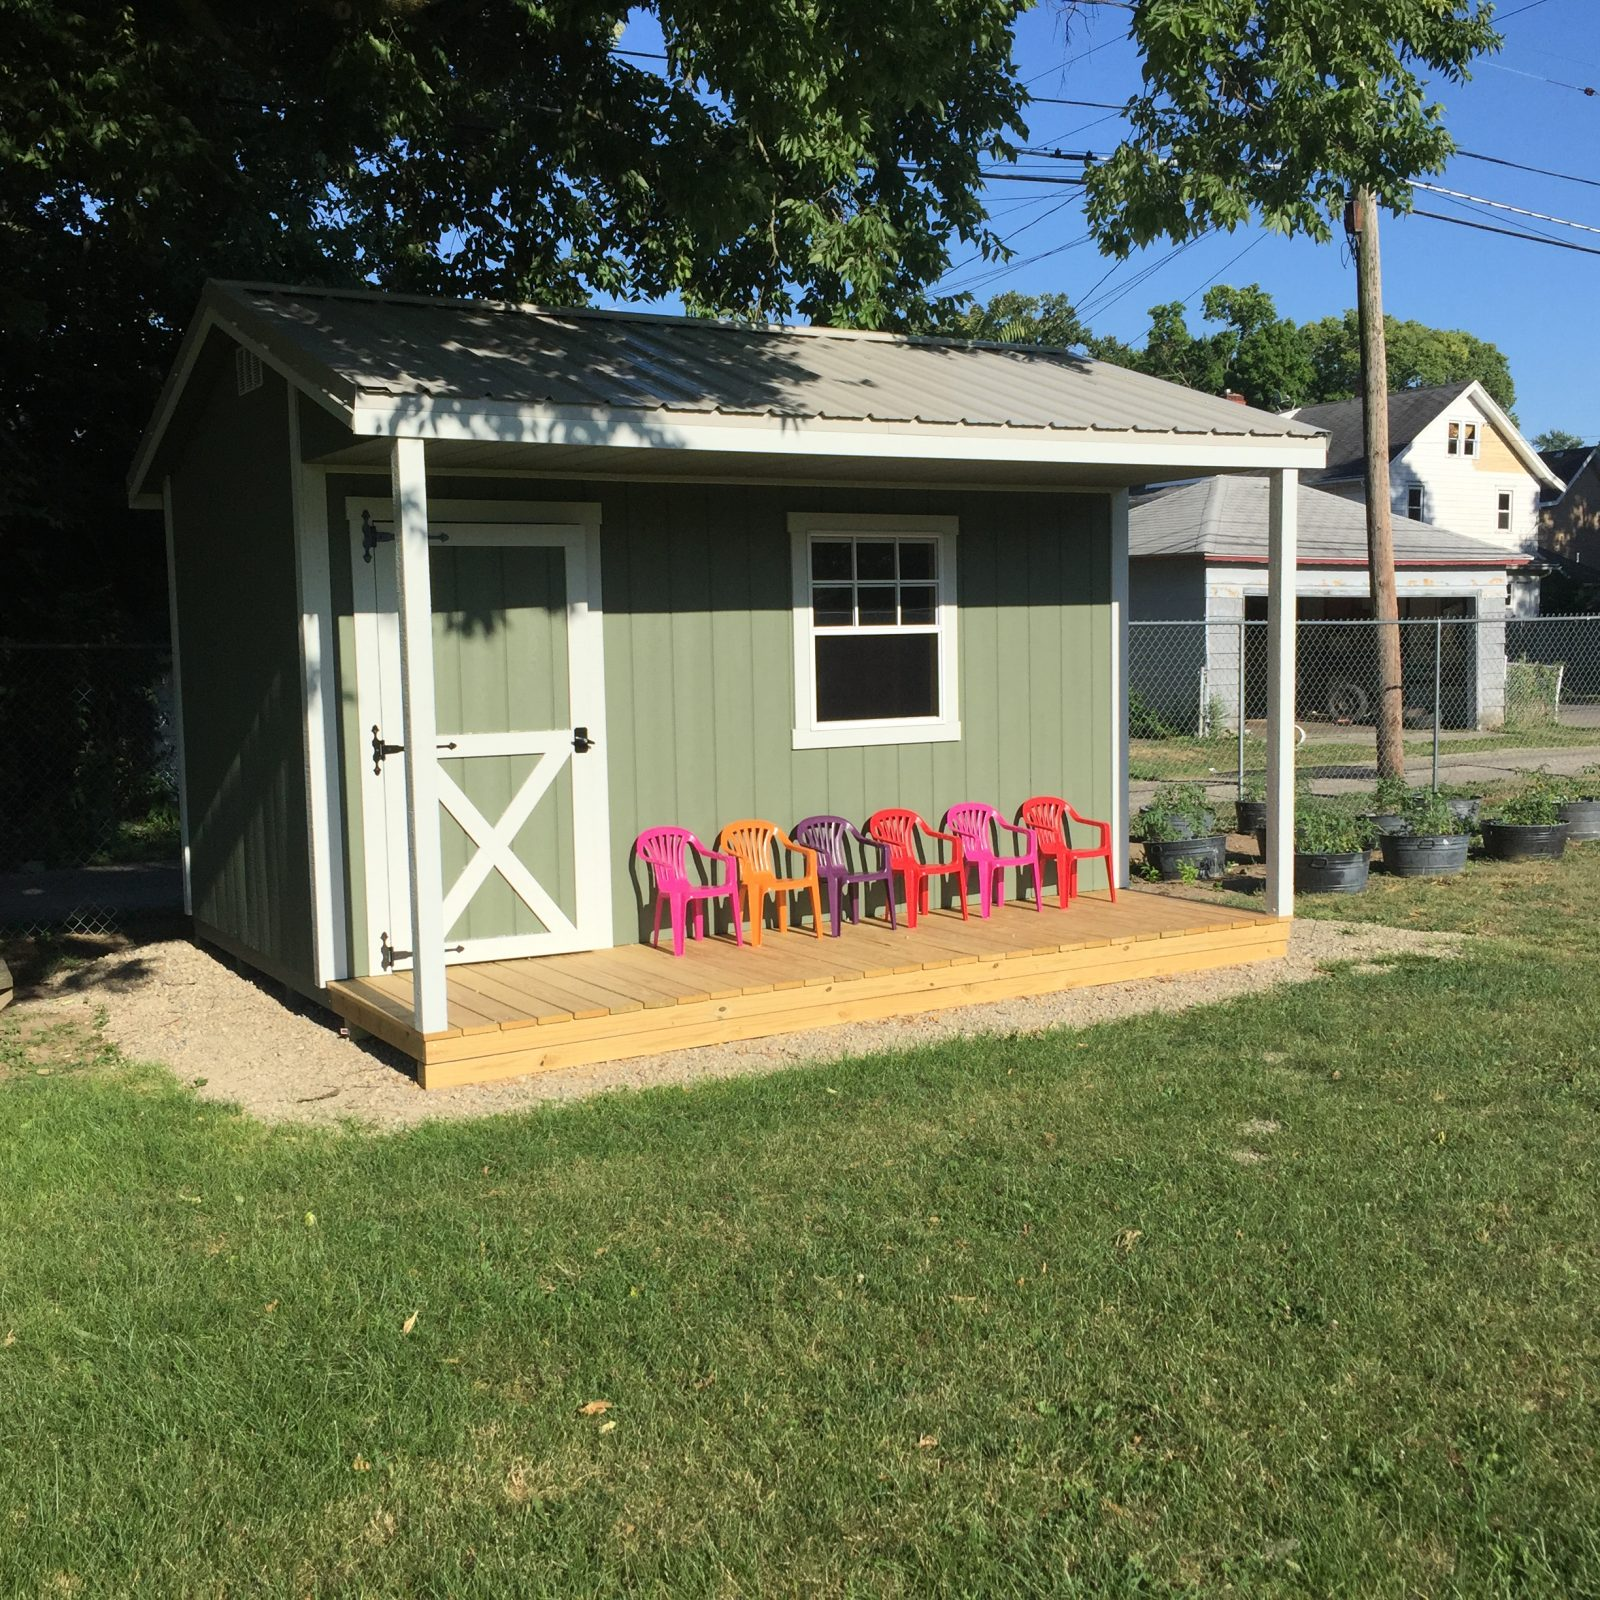 jefferson street oasis springfield ohio community garden with garden sheds 15